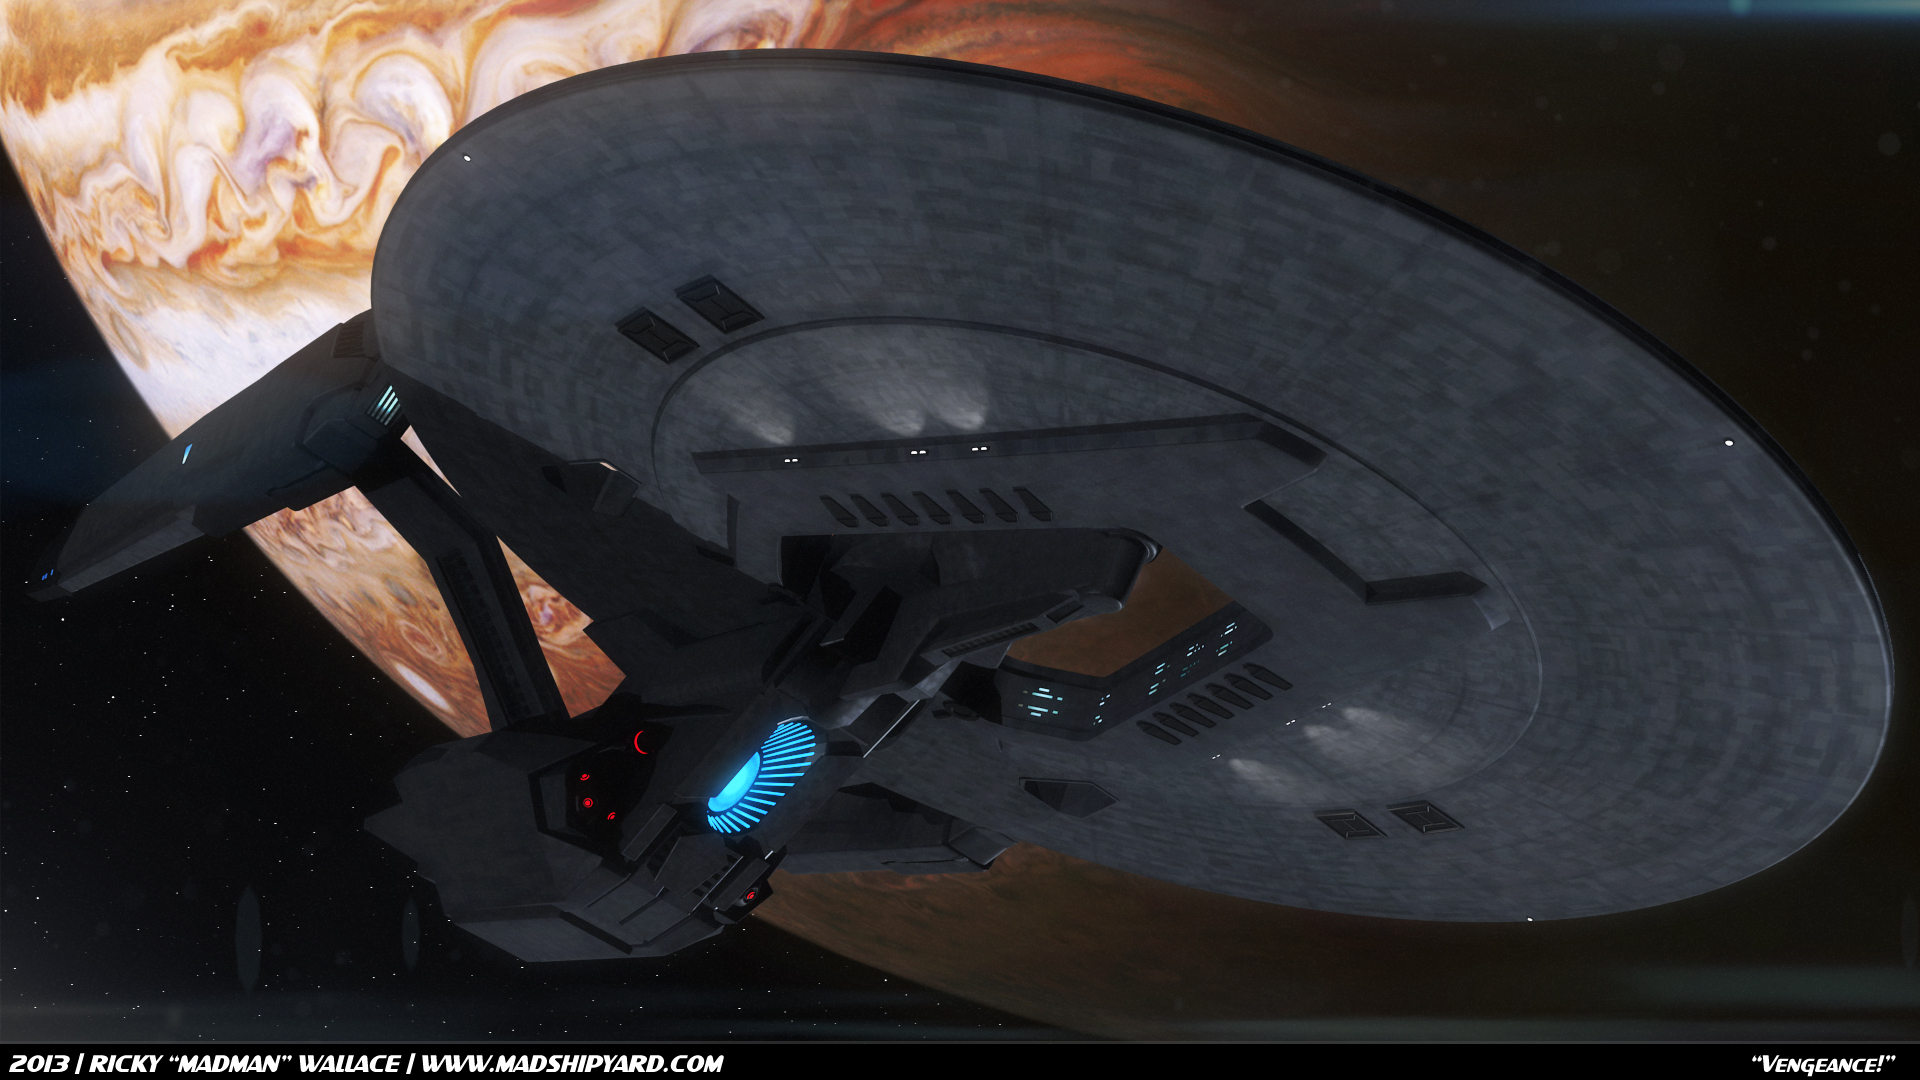 Uss Vengeance Wallpaper New Build, USS Vengean...